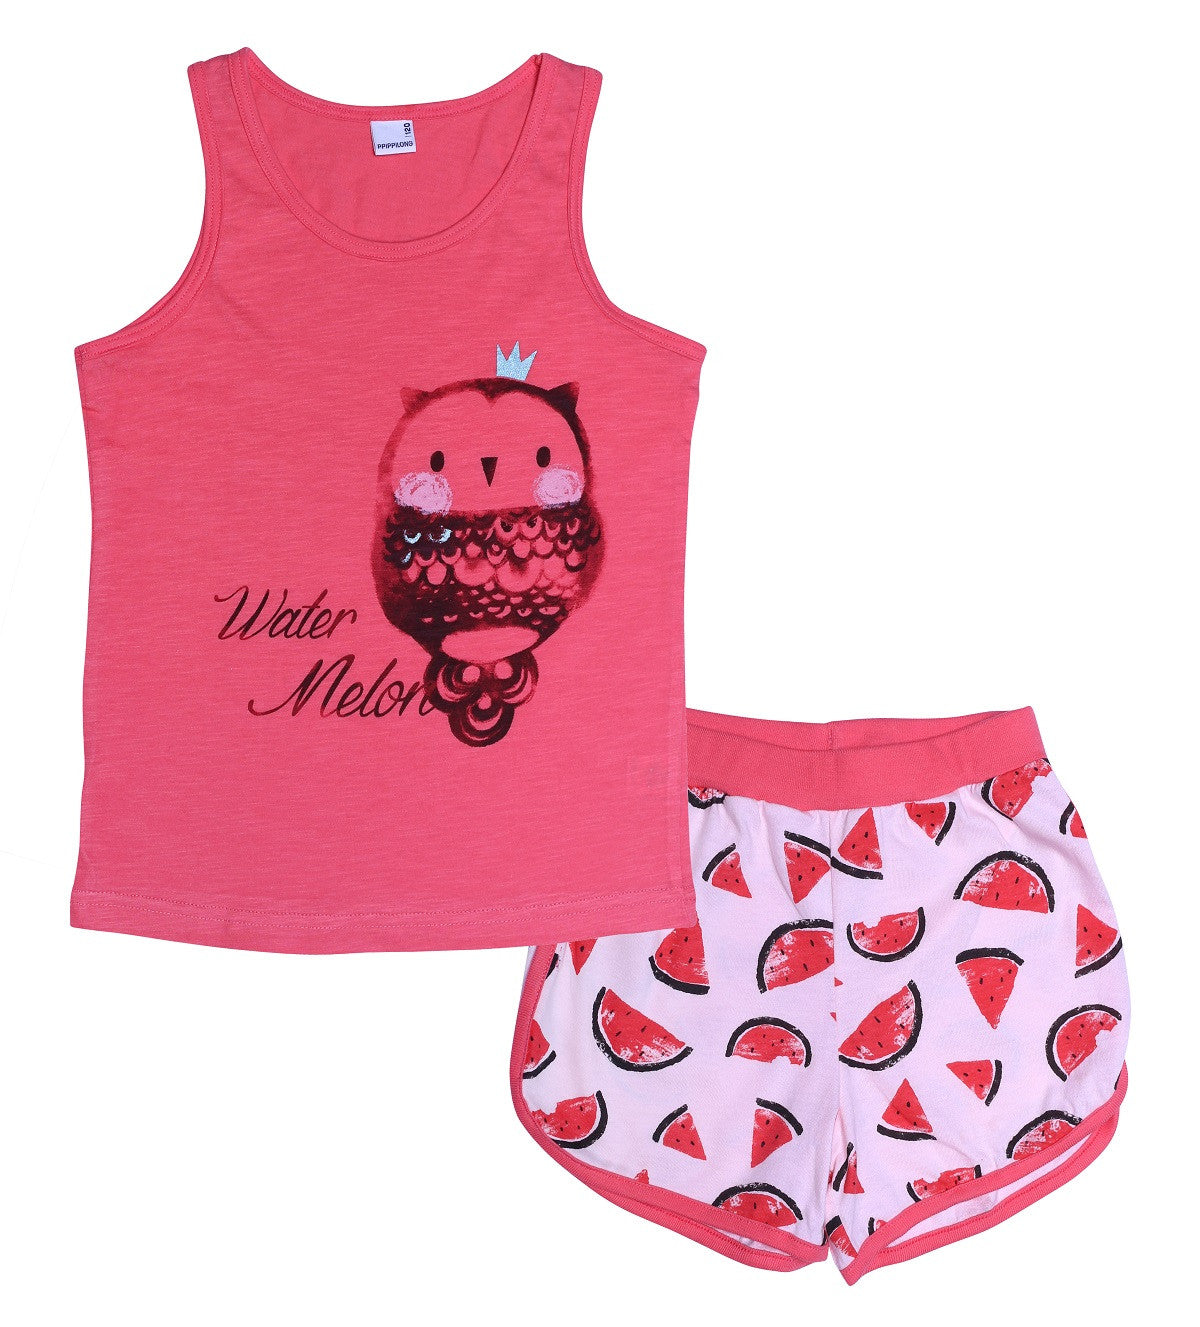 Watermelon Princess Owl